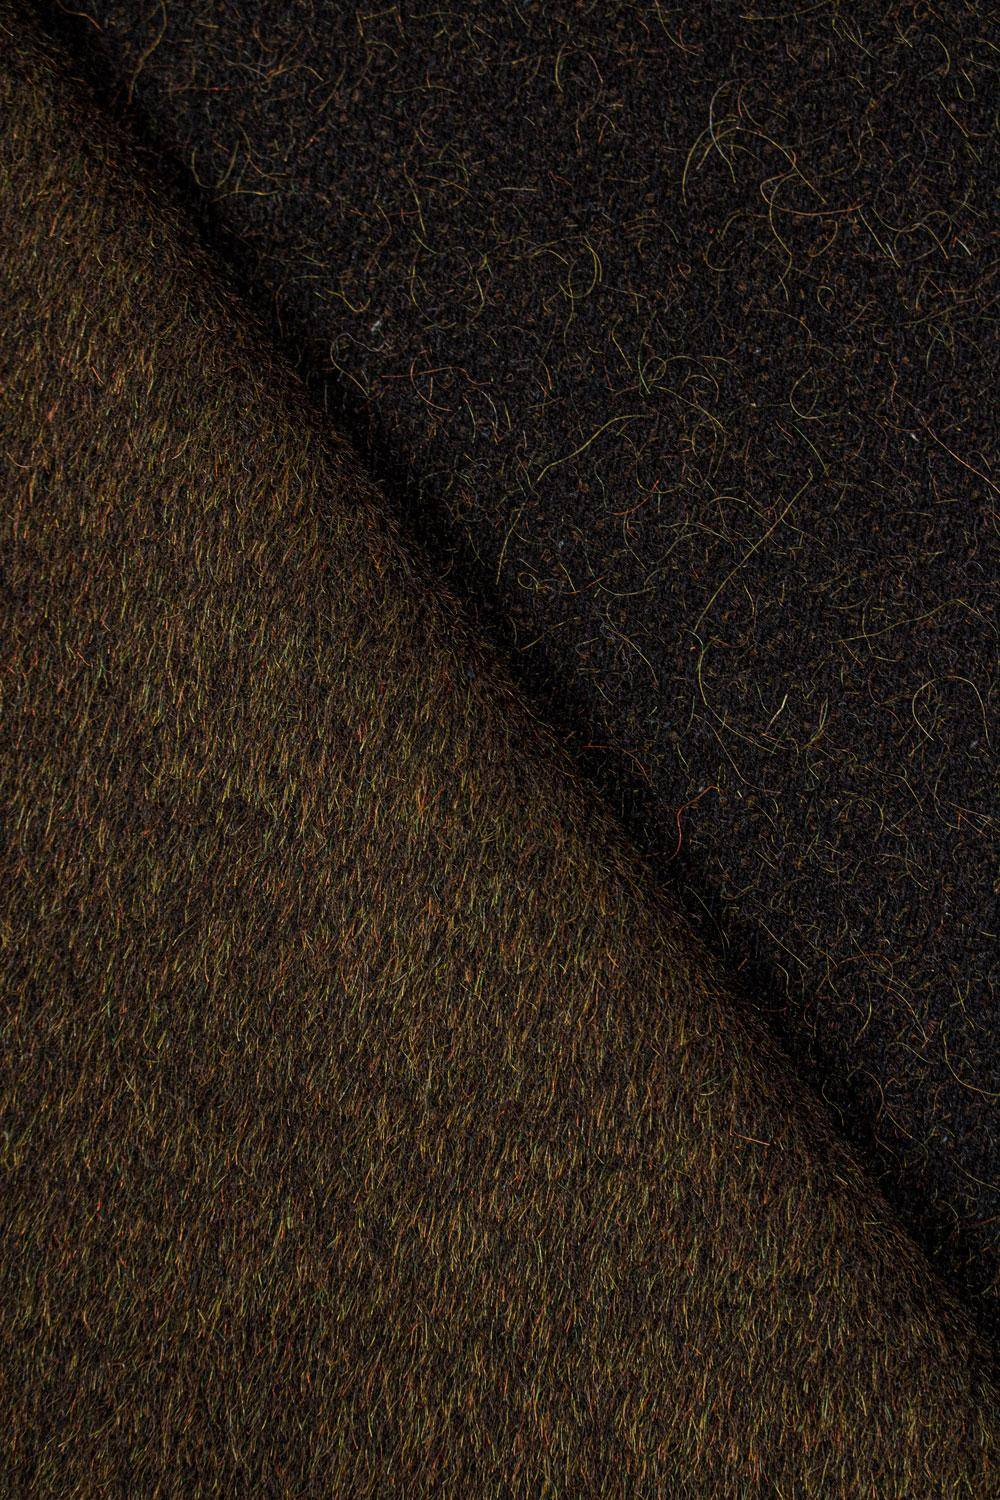 Fabric - Mohair - Brown - 155 cm - 360 g/m2